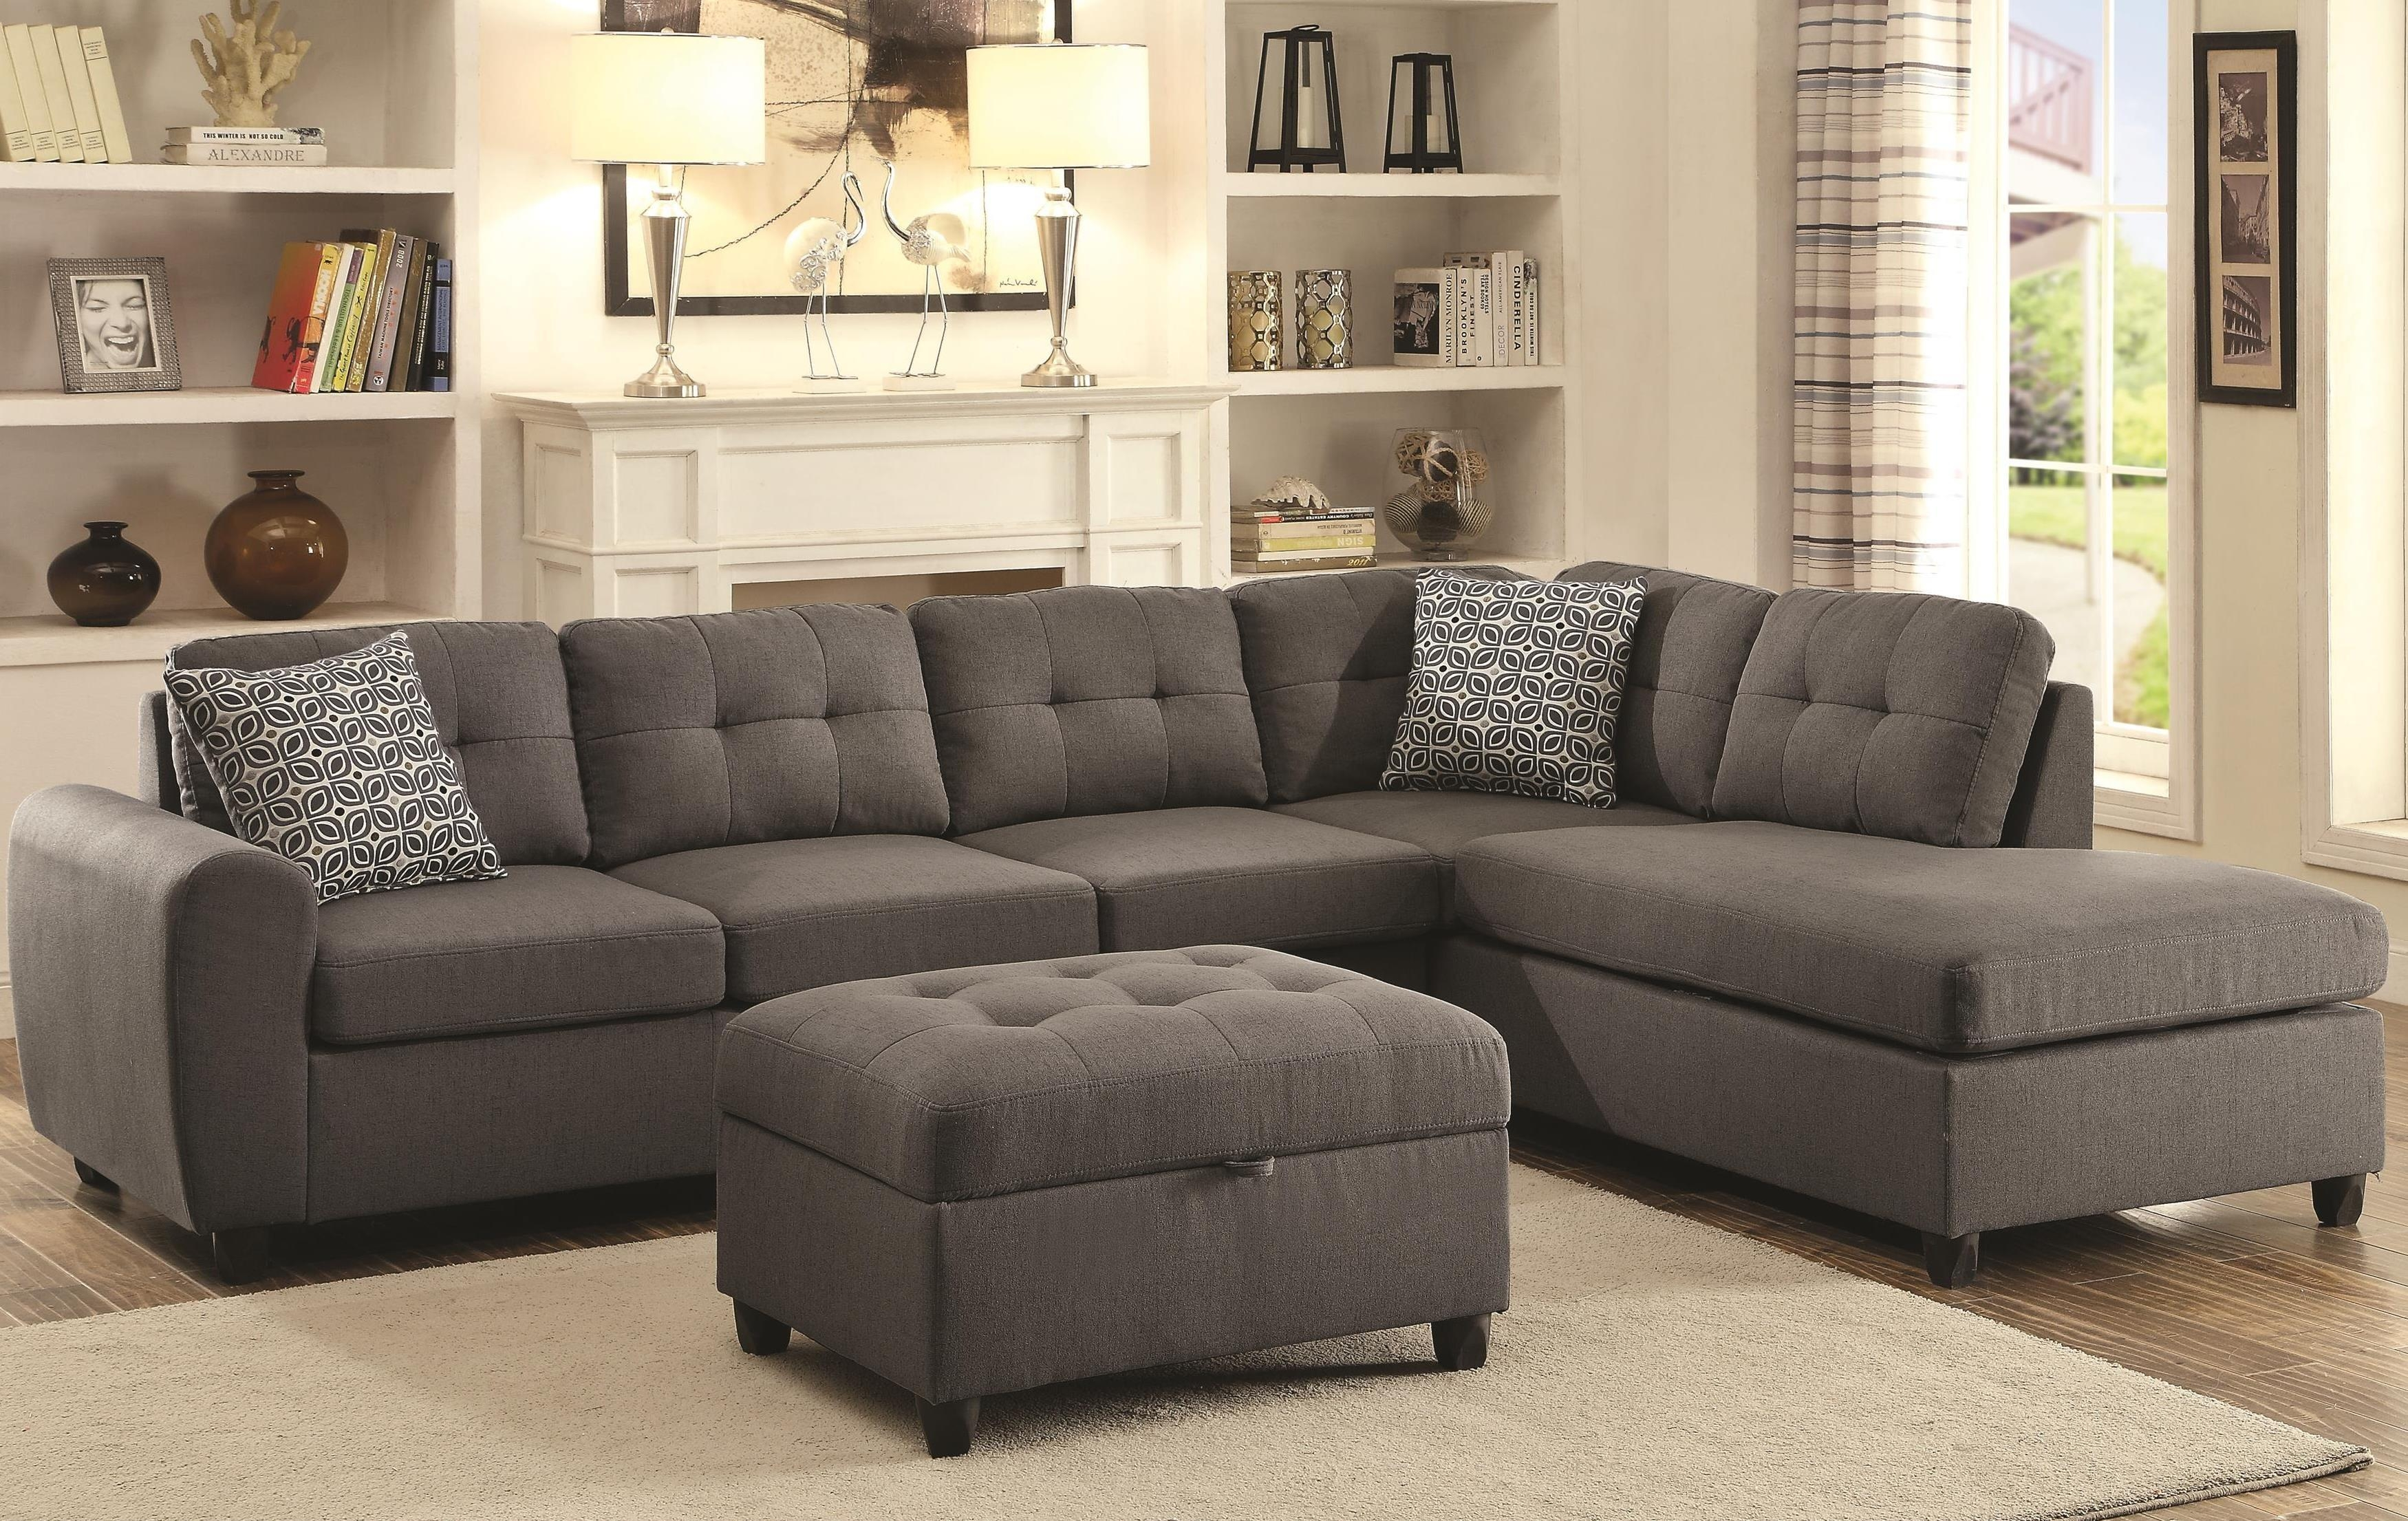 Coaster 500413 Sofa Chaise Sectional With Steel Grey Fabric Upholstery Within Coasters Sofas (Image 4 of 20)